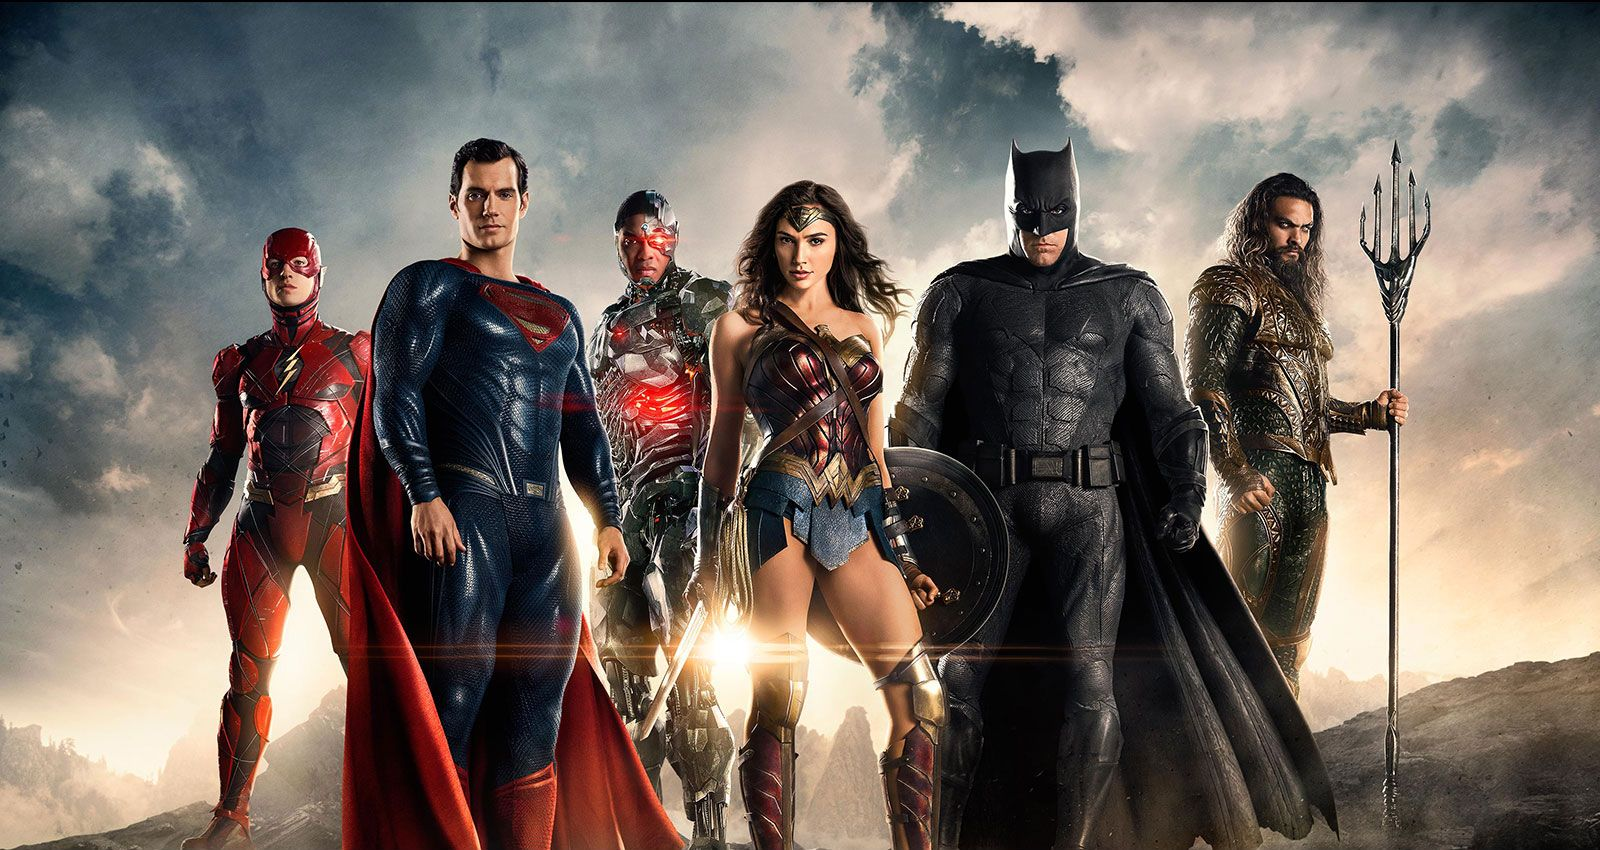 Zack Snyder's Justice League cut would have featured a key comics character